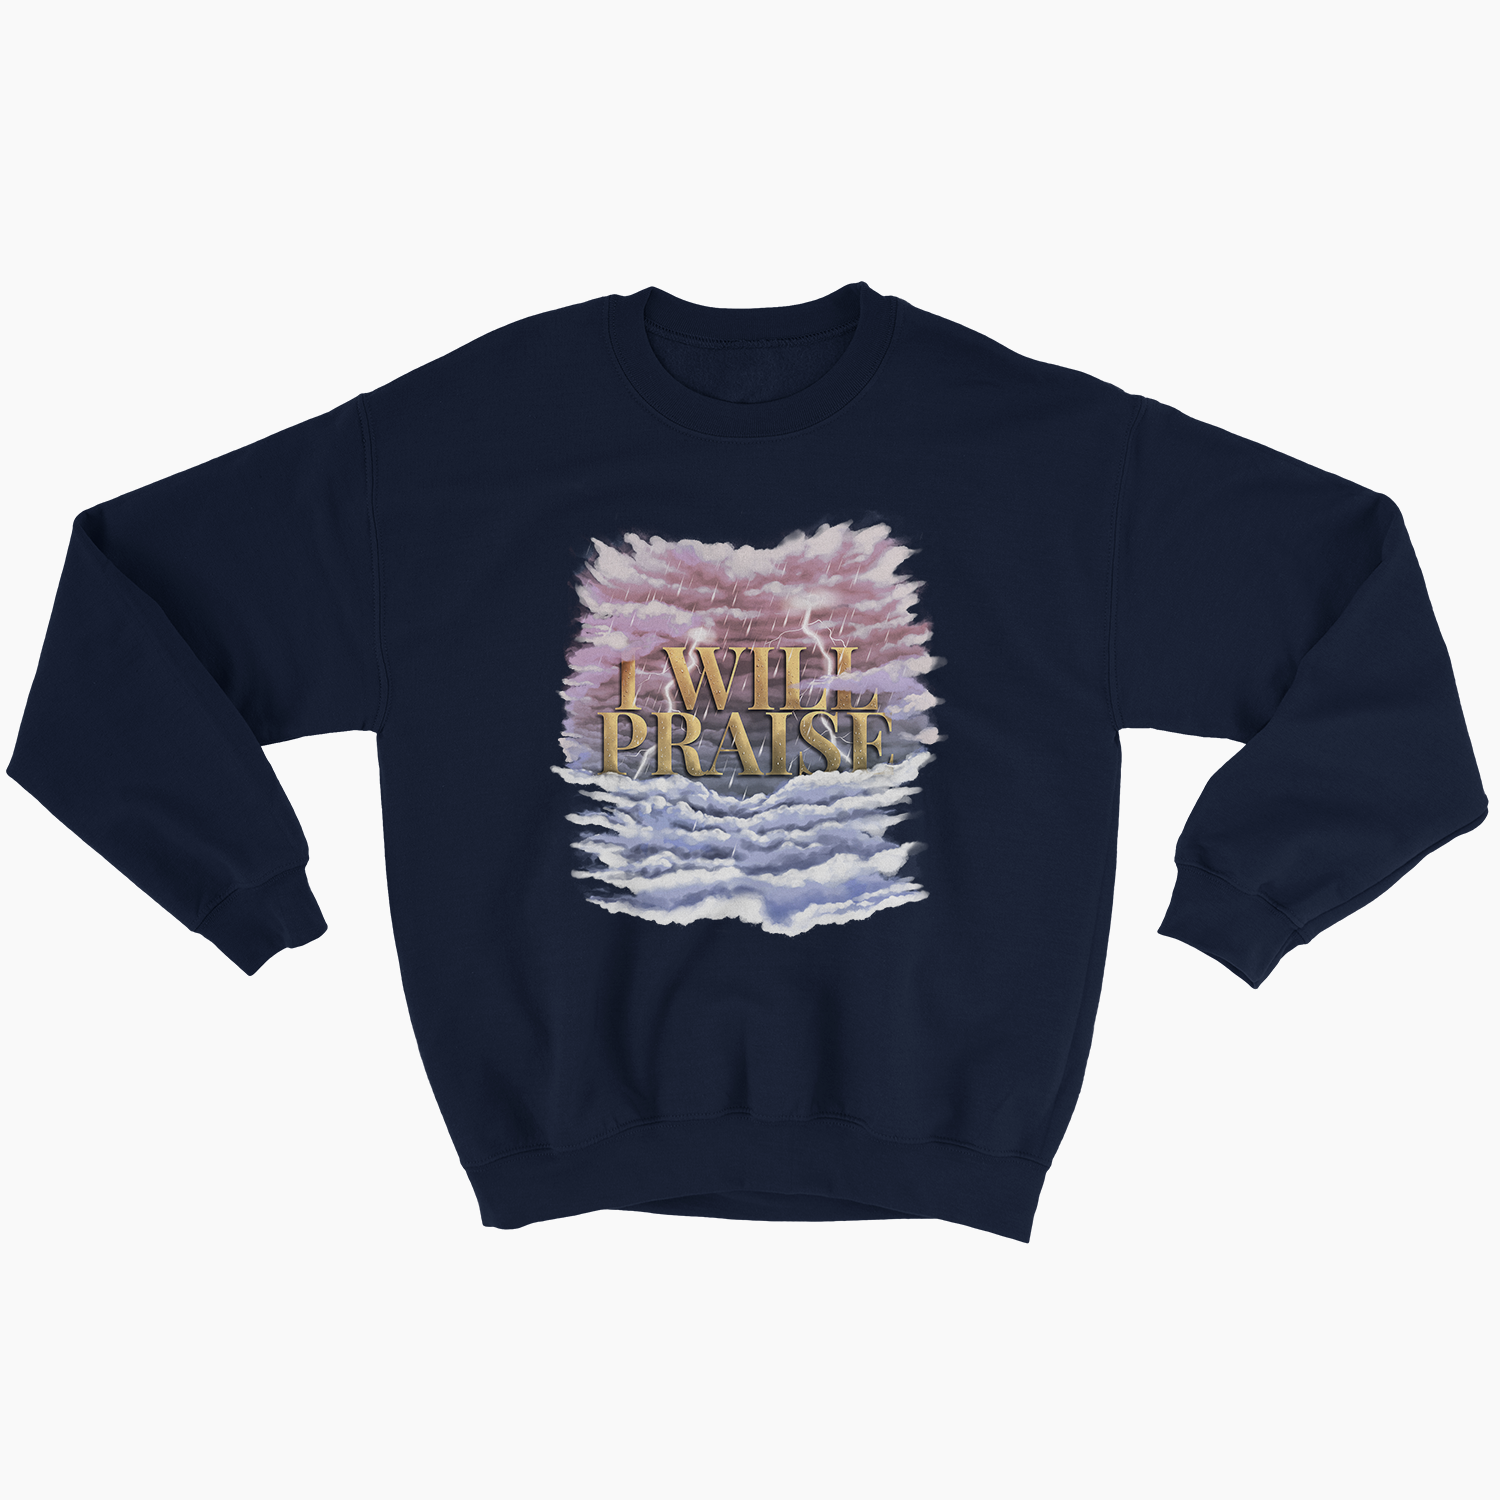 """I WILL PRAISE"" - Unisex CrewNeck Sweatshirt (Navy) - Walk by Faith Apparel"